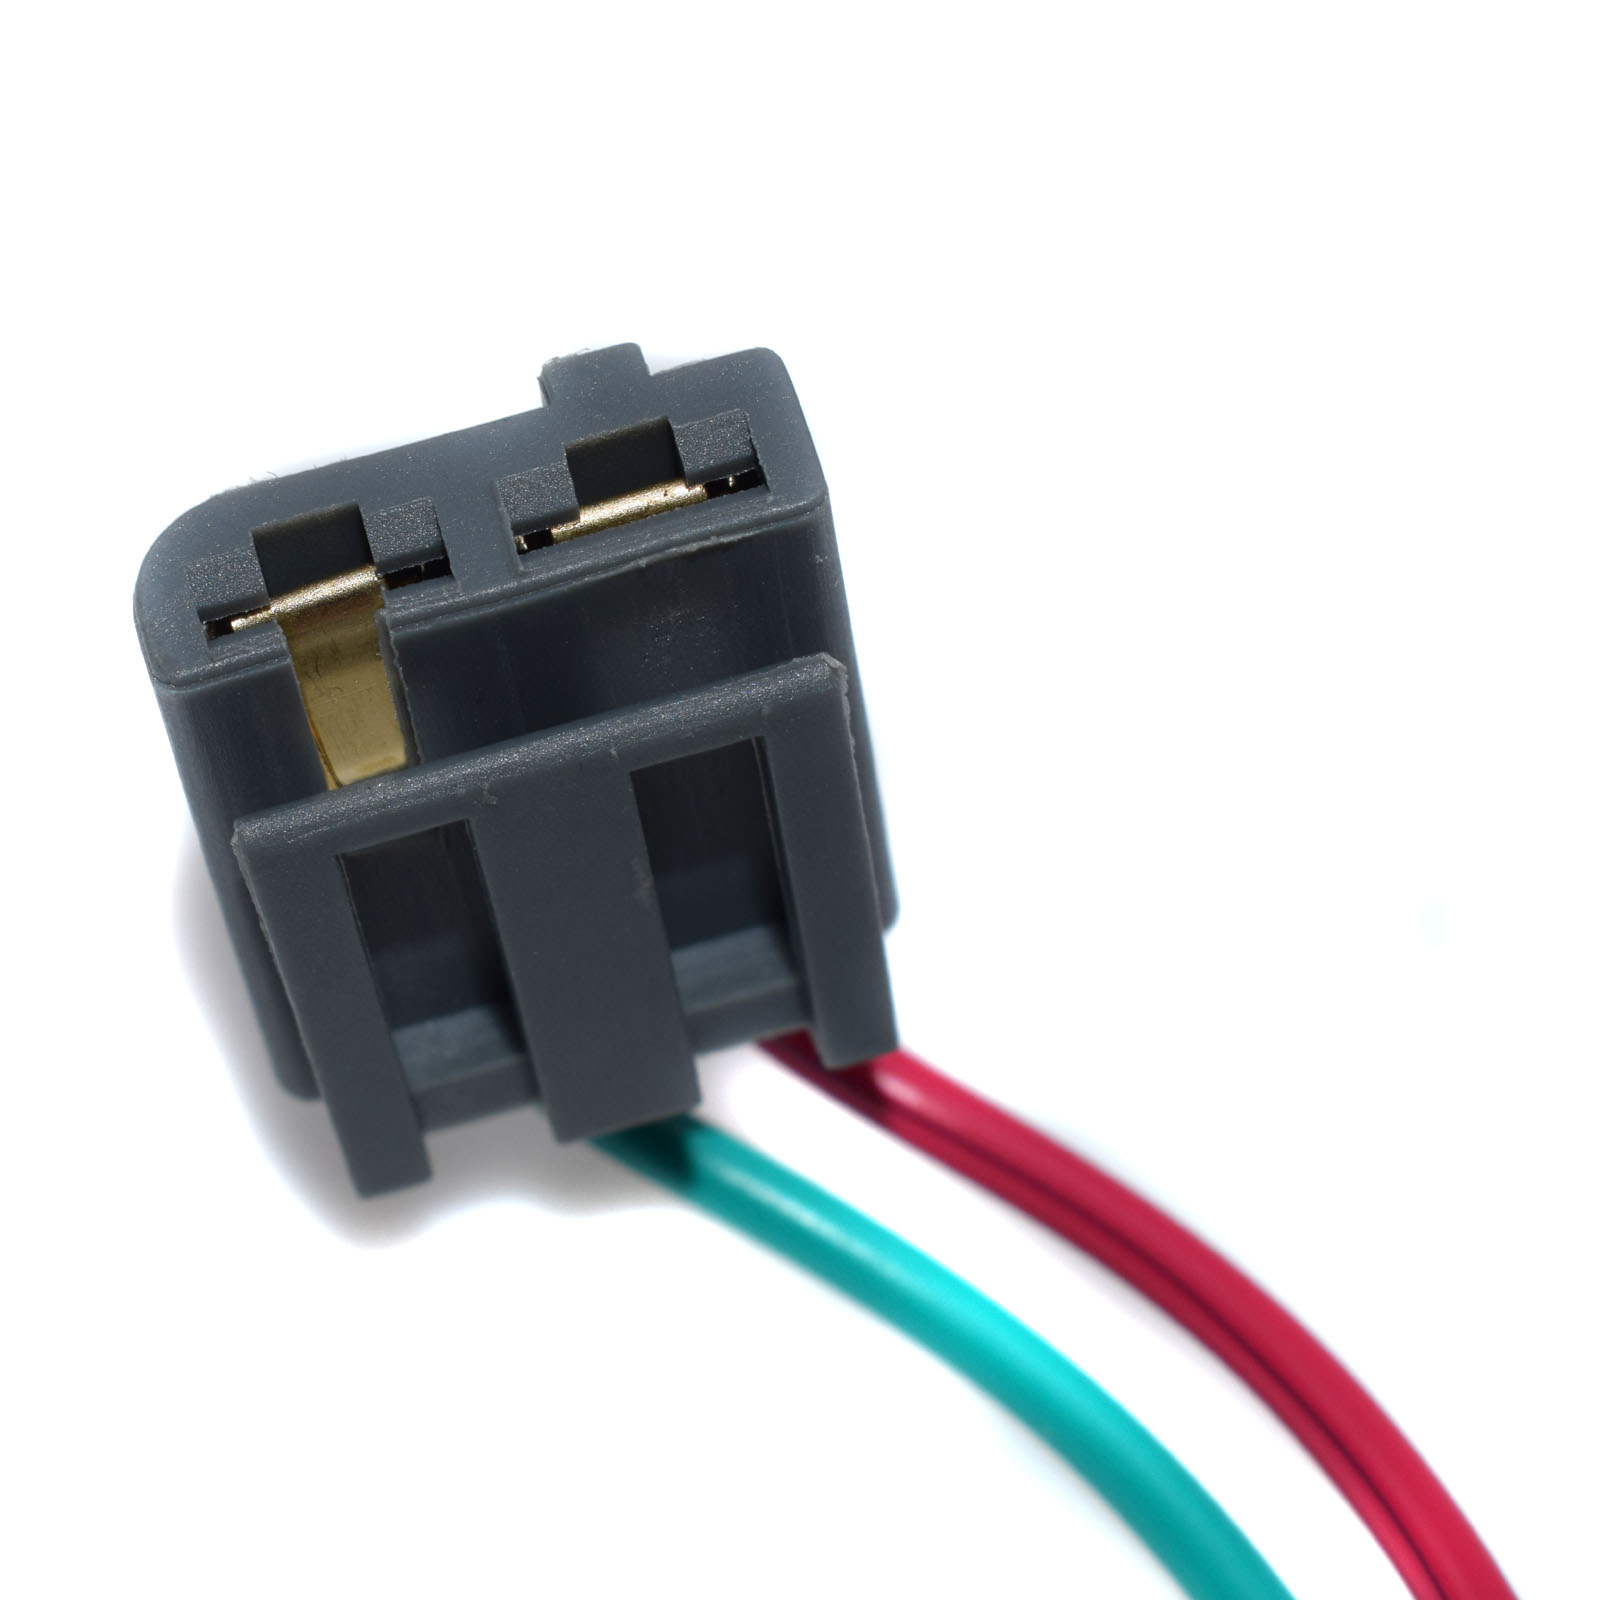 Buy Universal Hei Coil Cap Distributor Dual Wire Harness Connector Pigtail Plug 12v Power Tach 100413109 Jm6933 From